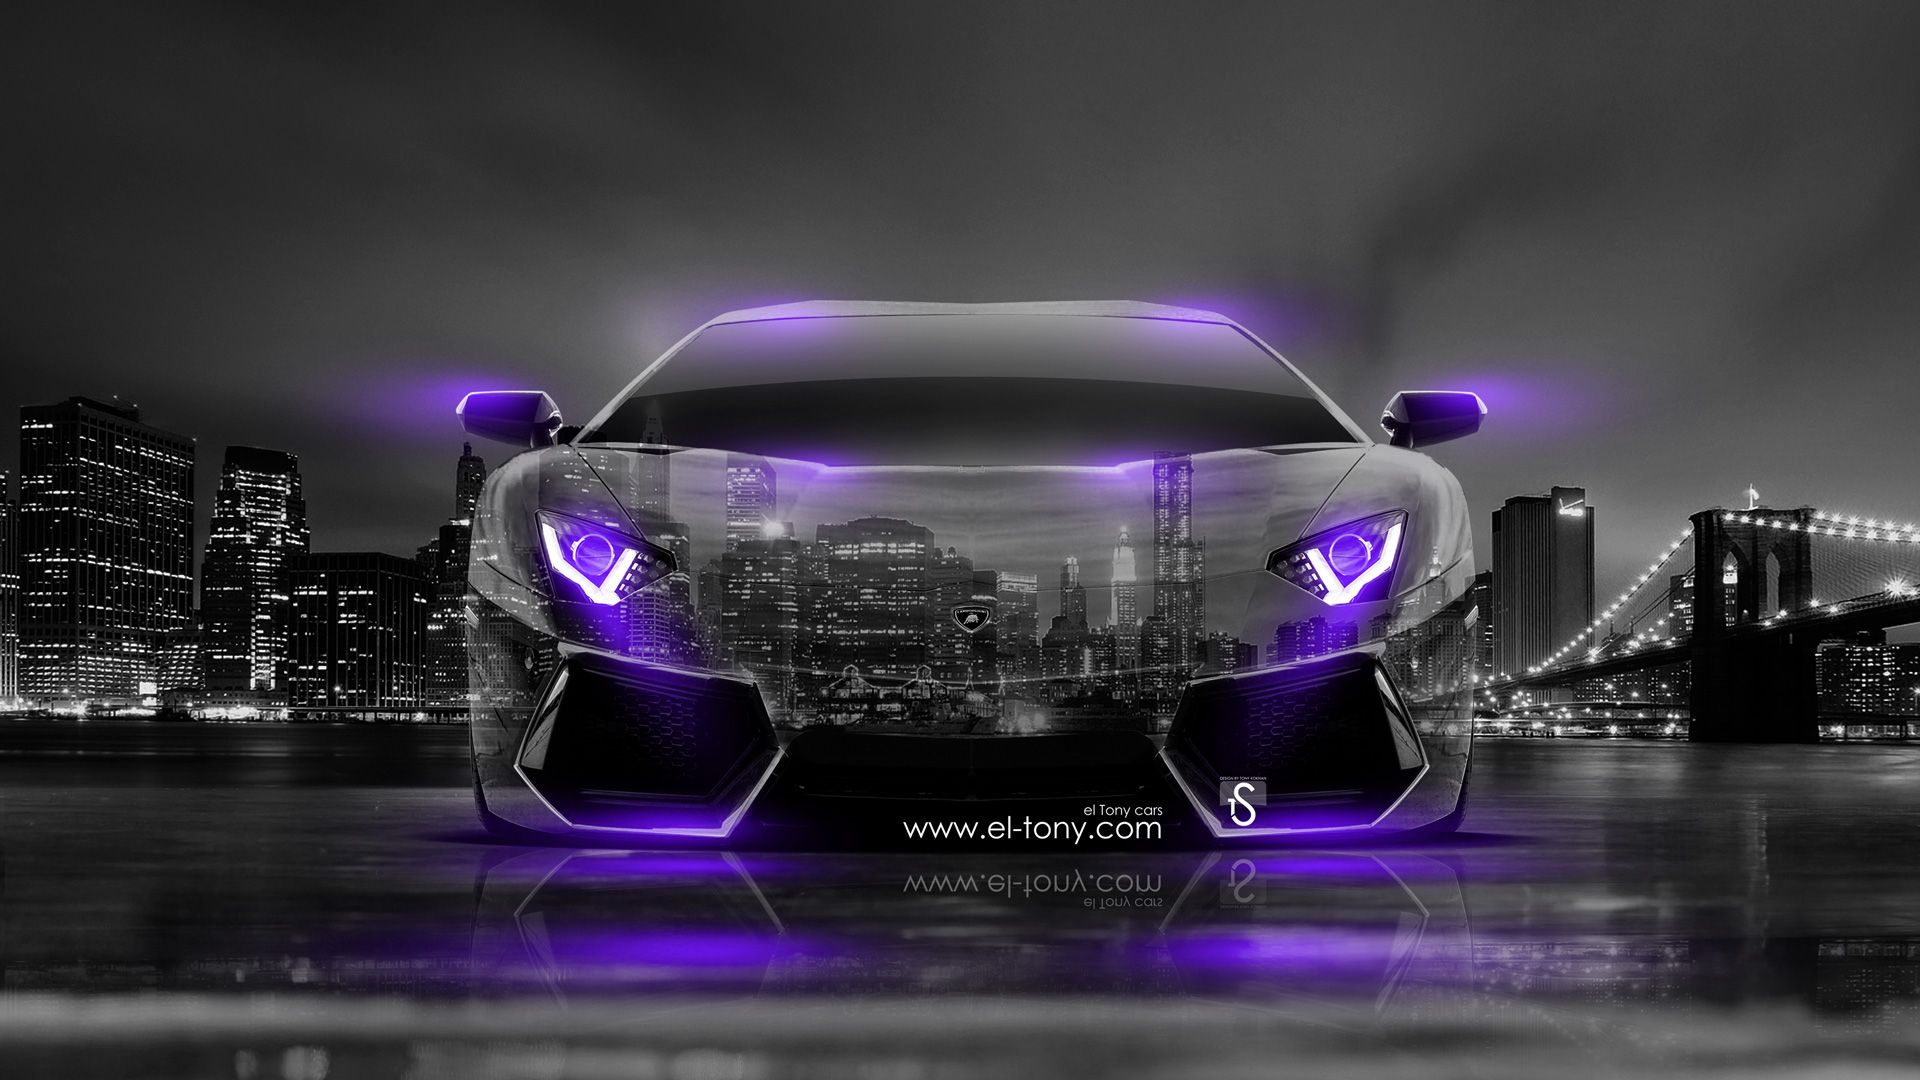 Gentil Black Lamborghini With Neon Blue Lights | Lamborghini Aventador Front  Crystal City